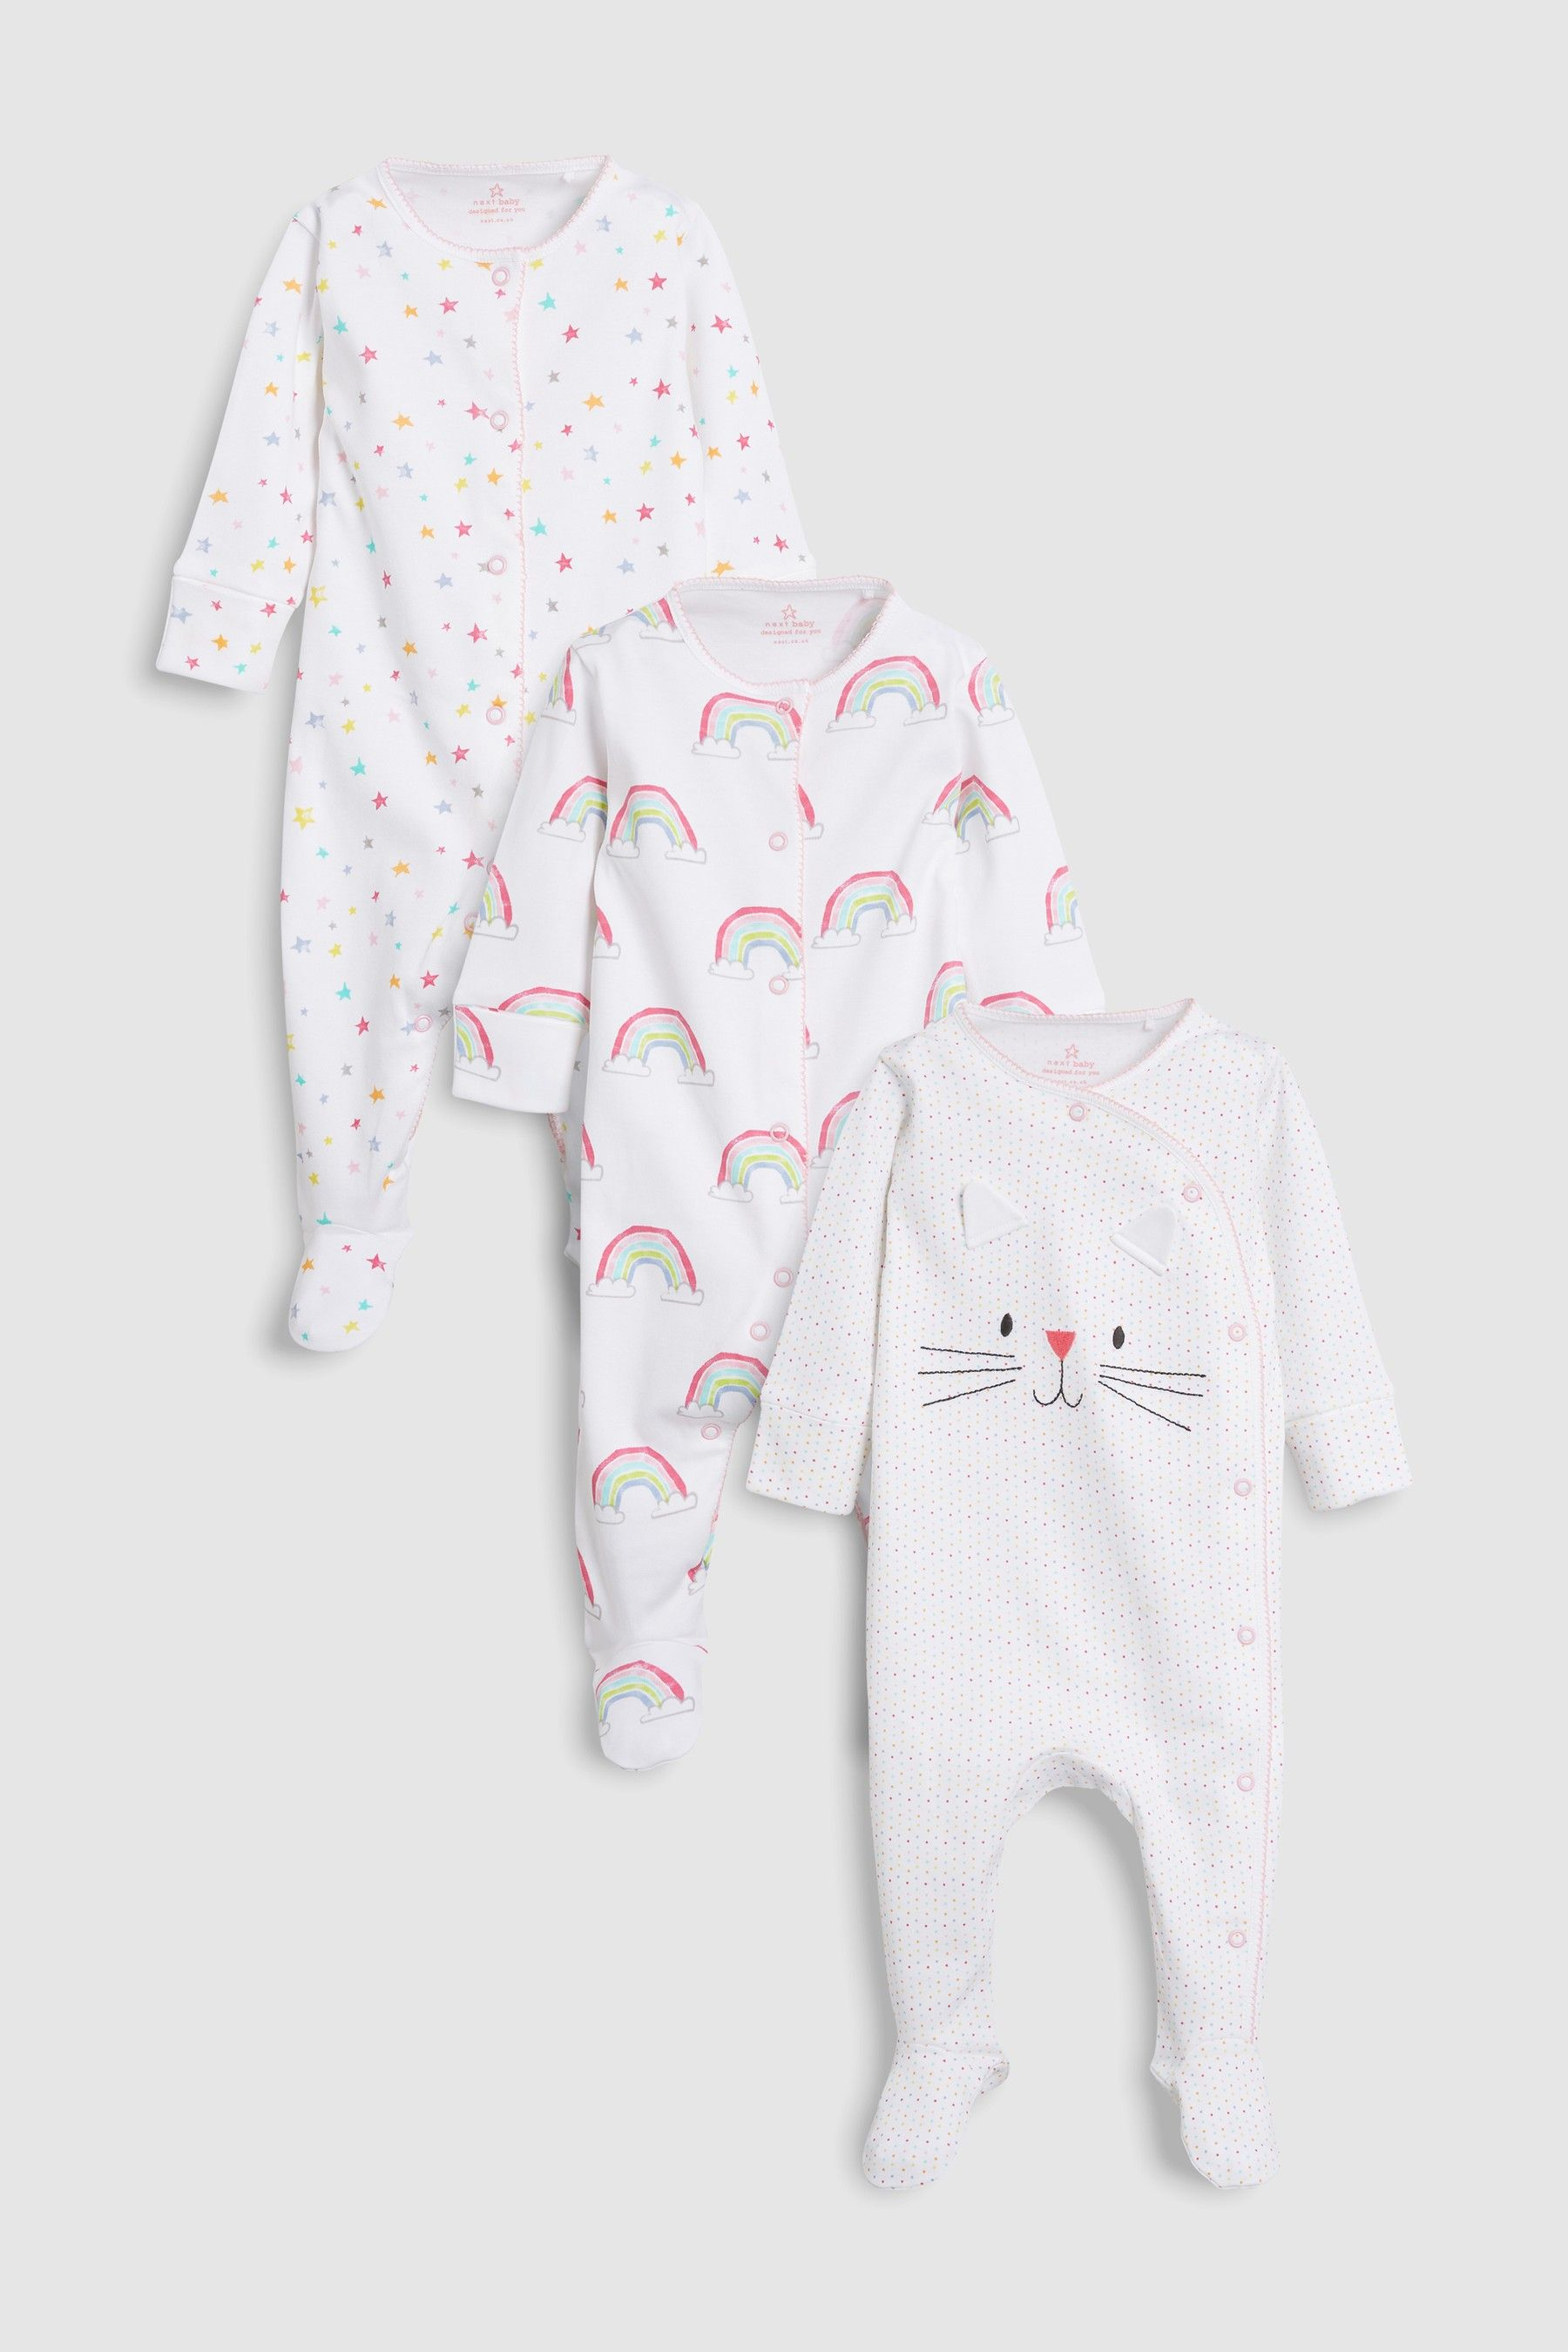 098e11fd7a02 Girls Next Bright Cat Sleepsuits Three Pack (0mths-2yrs) - White ...